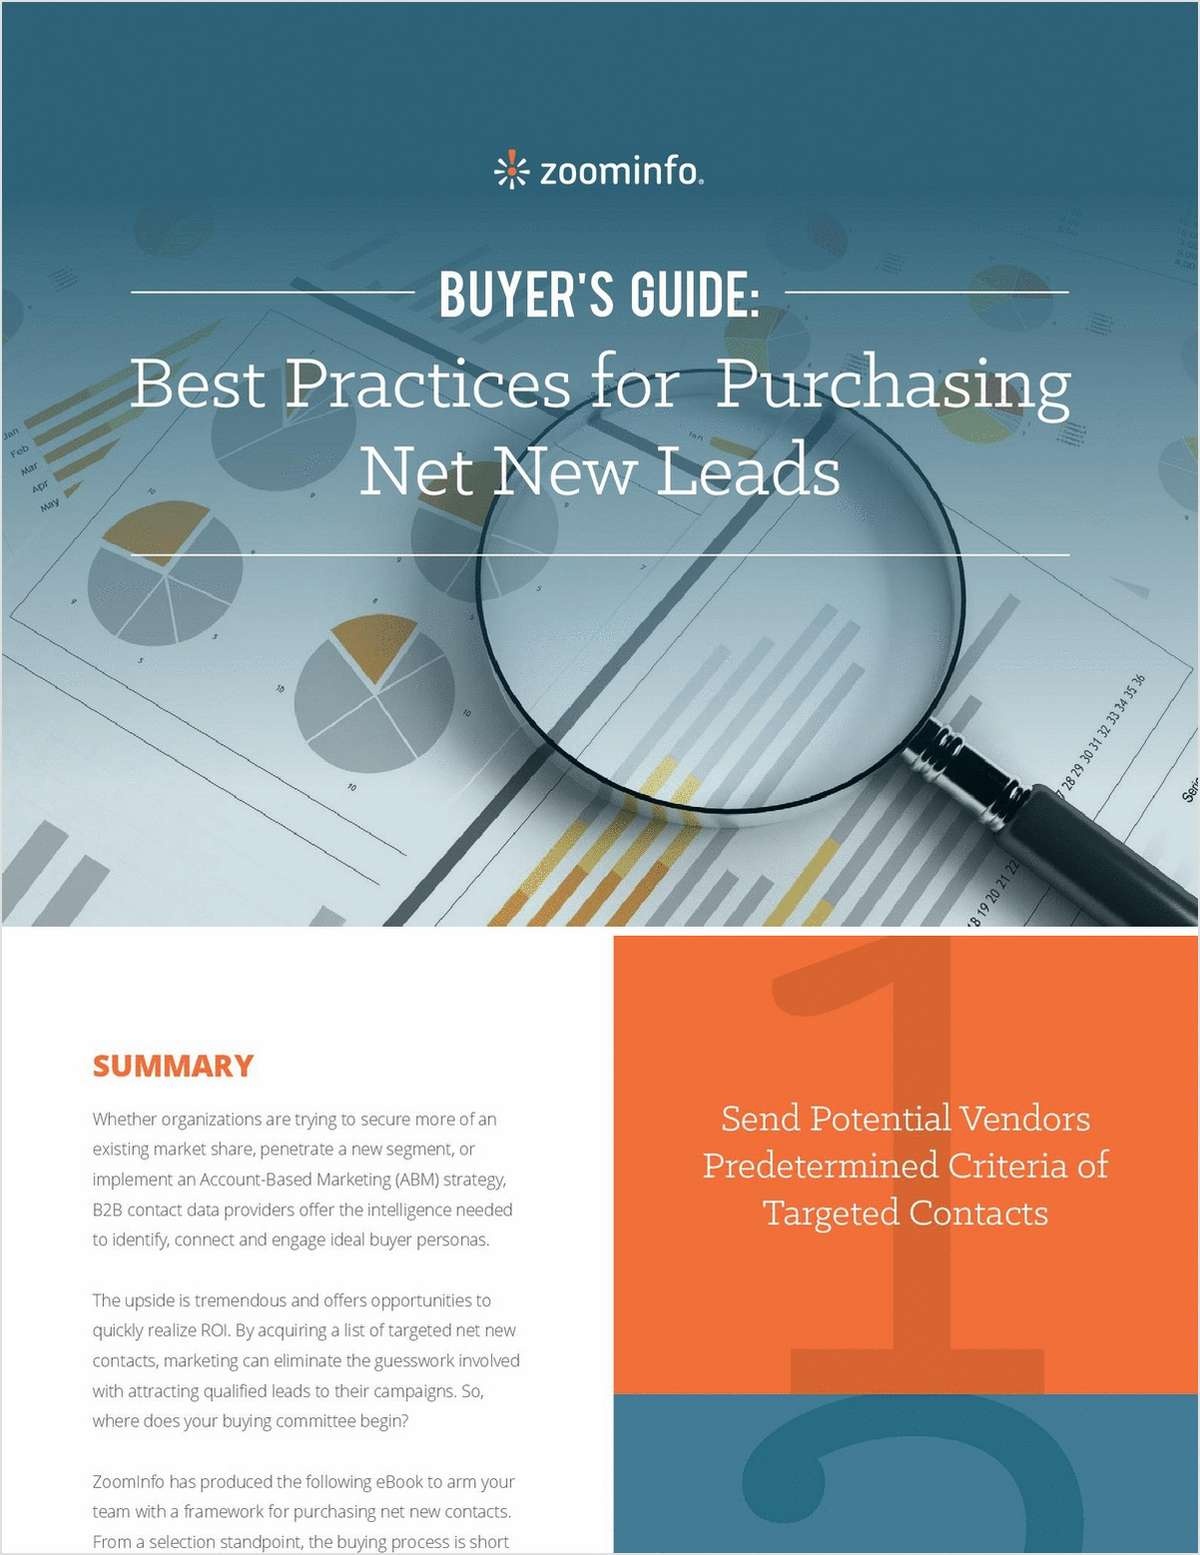 Best Practices for Purchasing Net New Leads